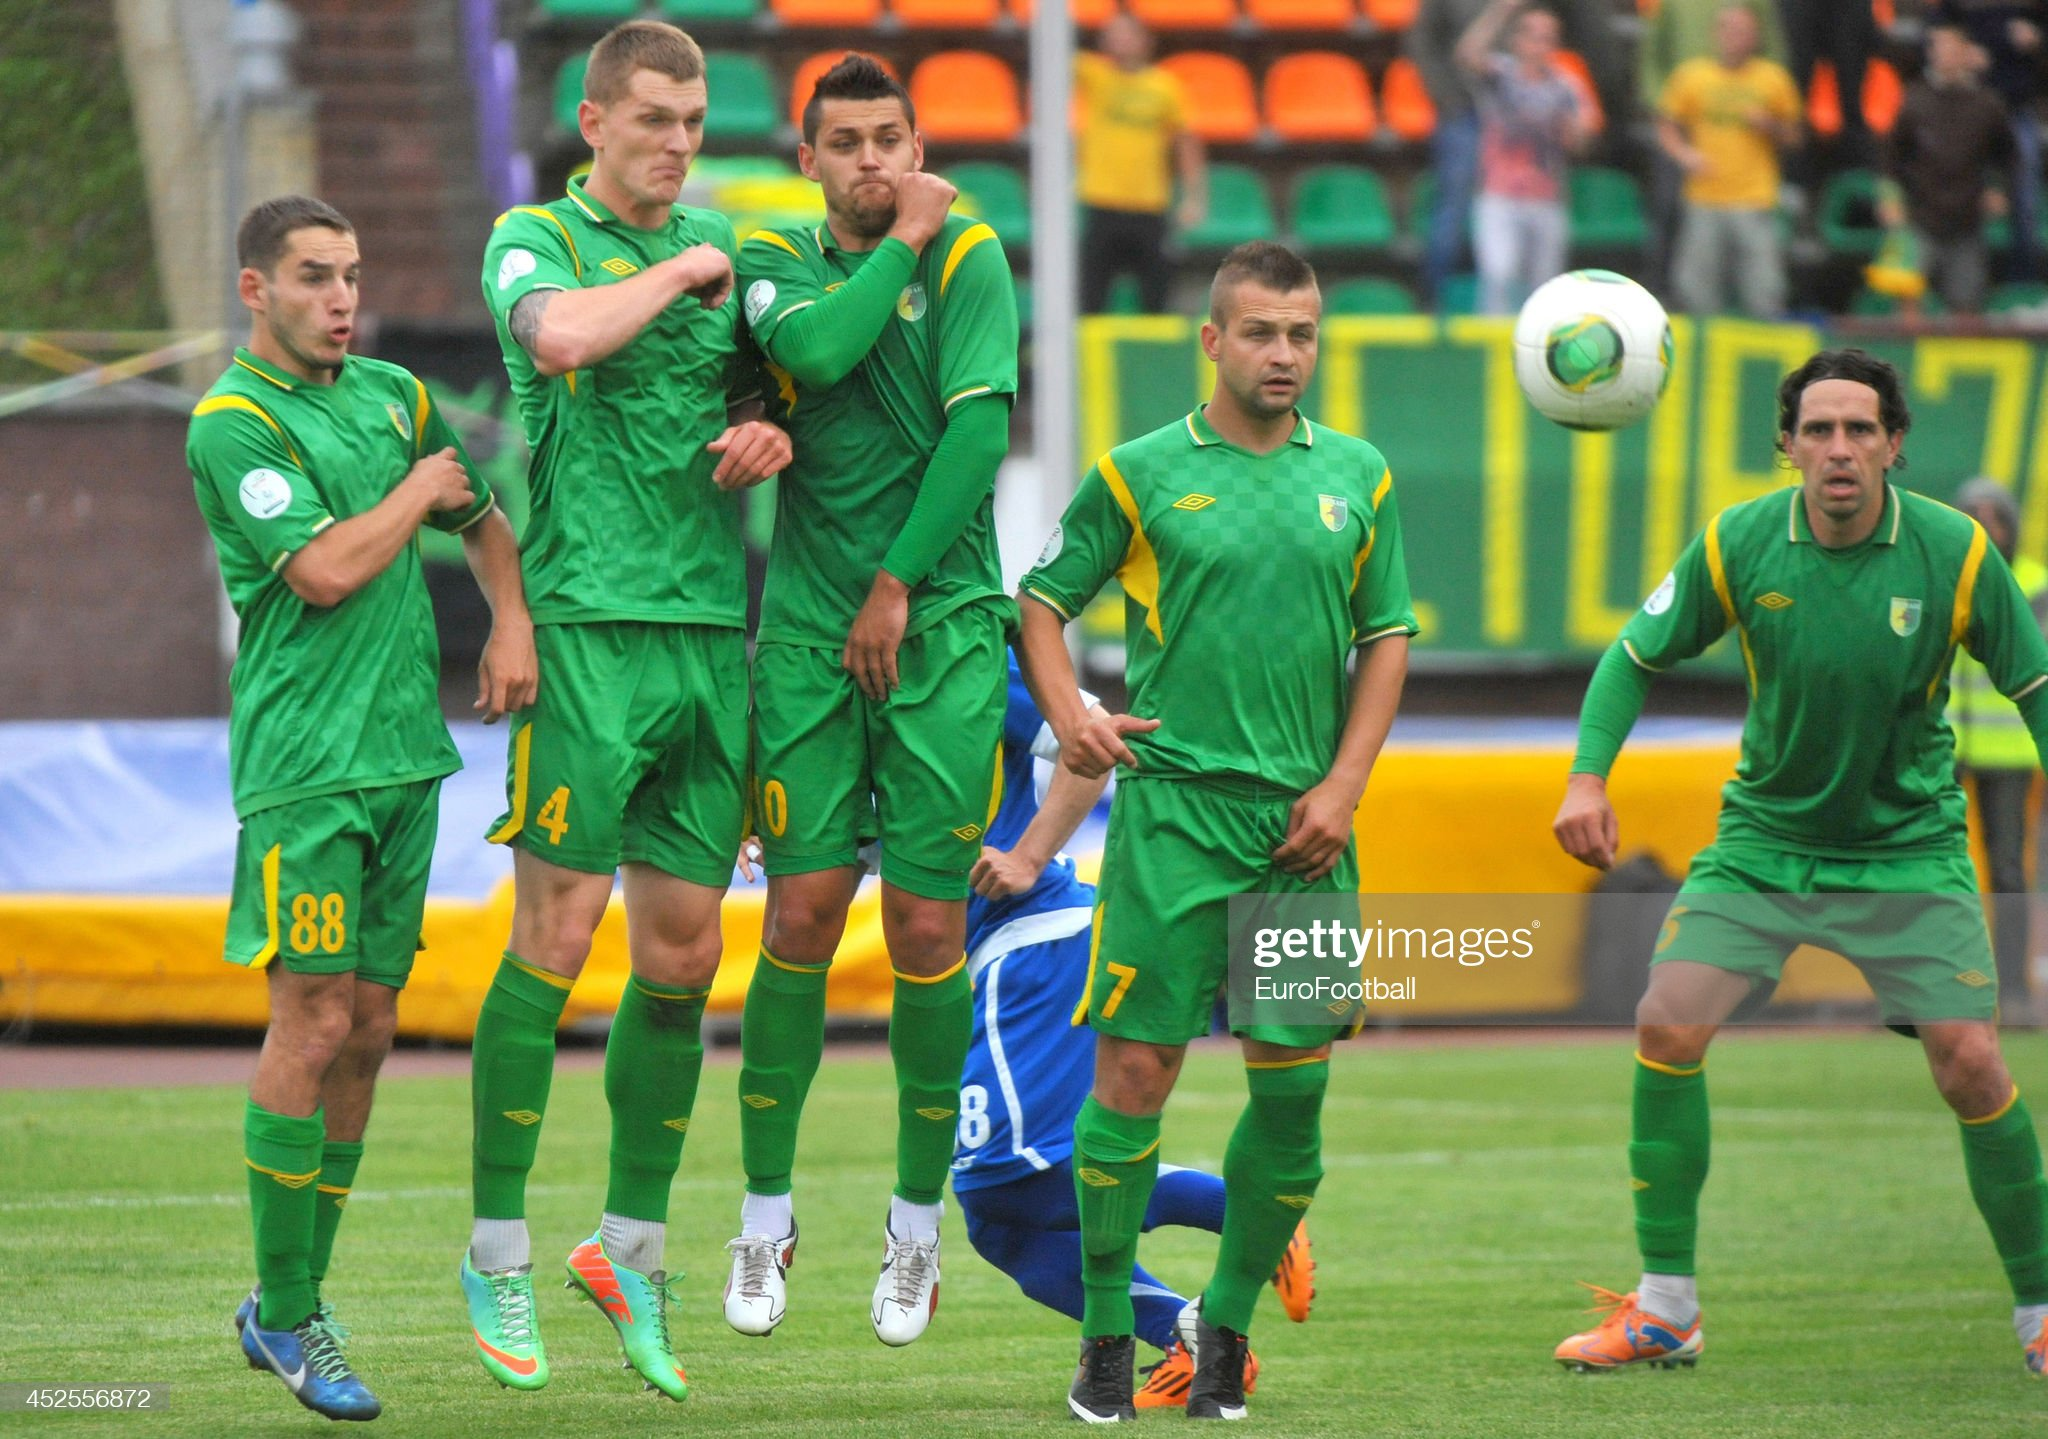 Isloch v Neman Grodno preview, prediction and odds